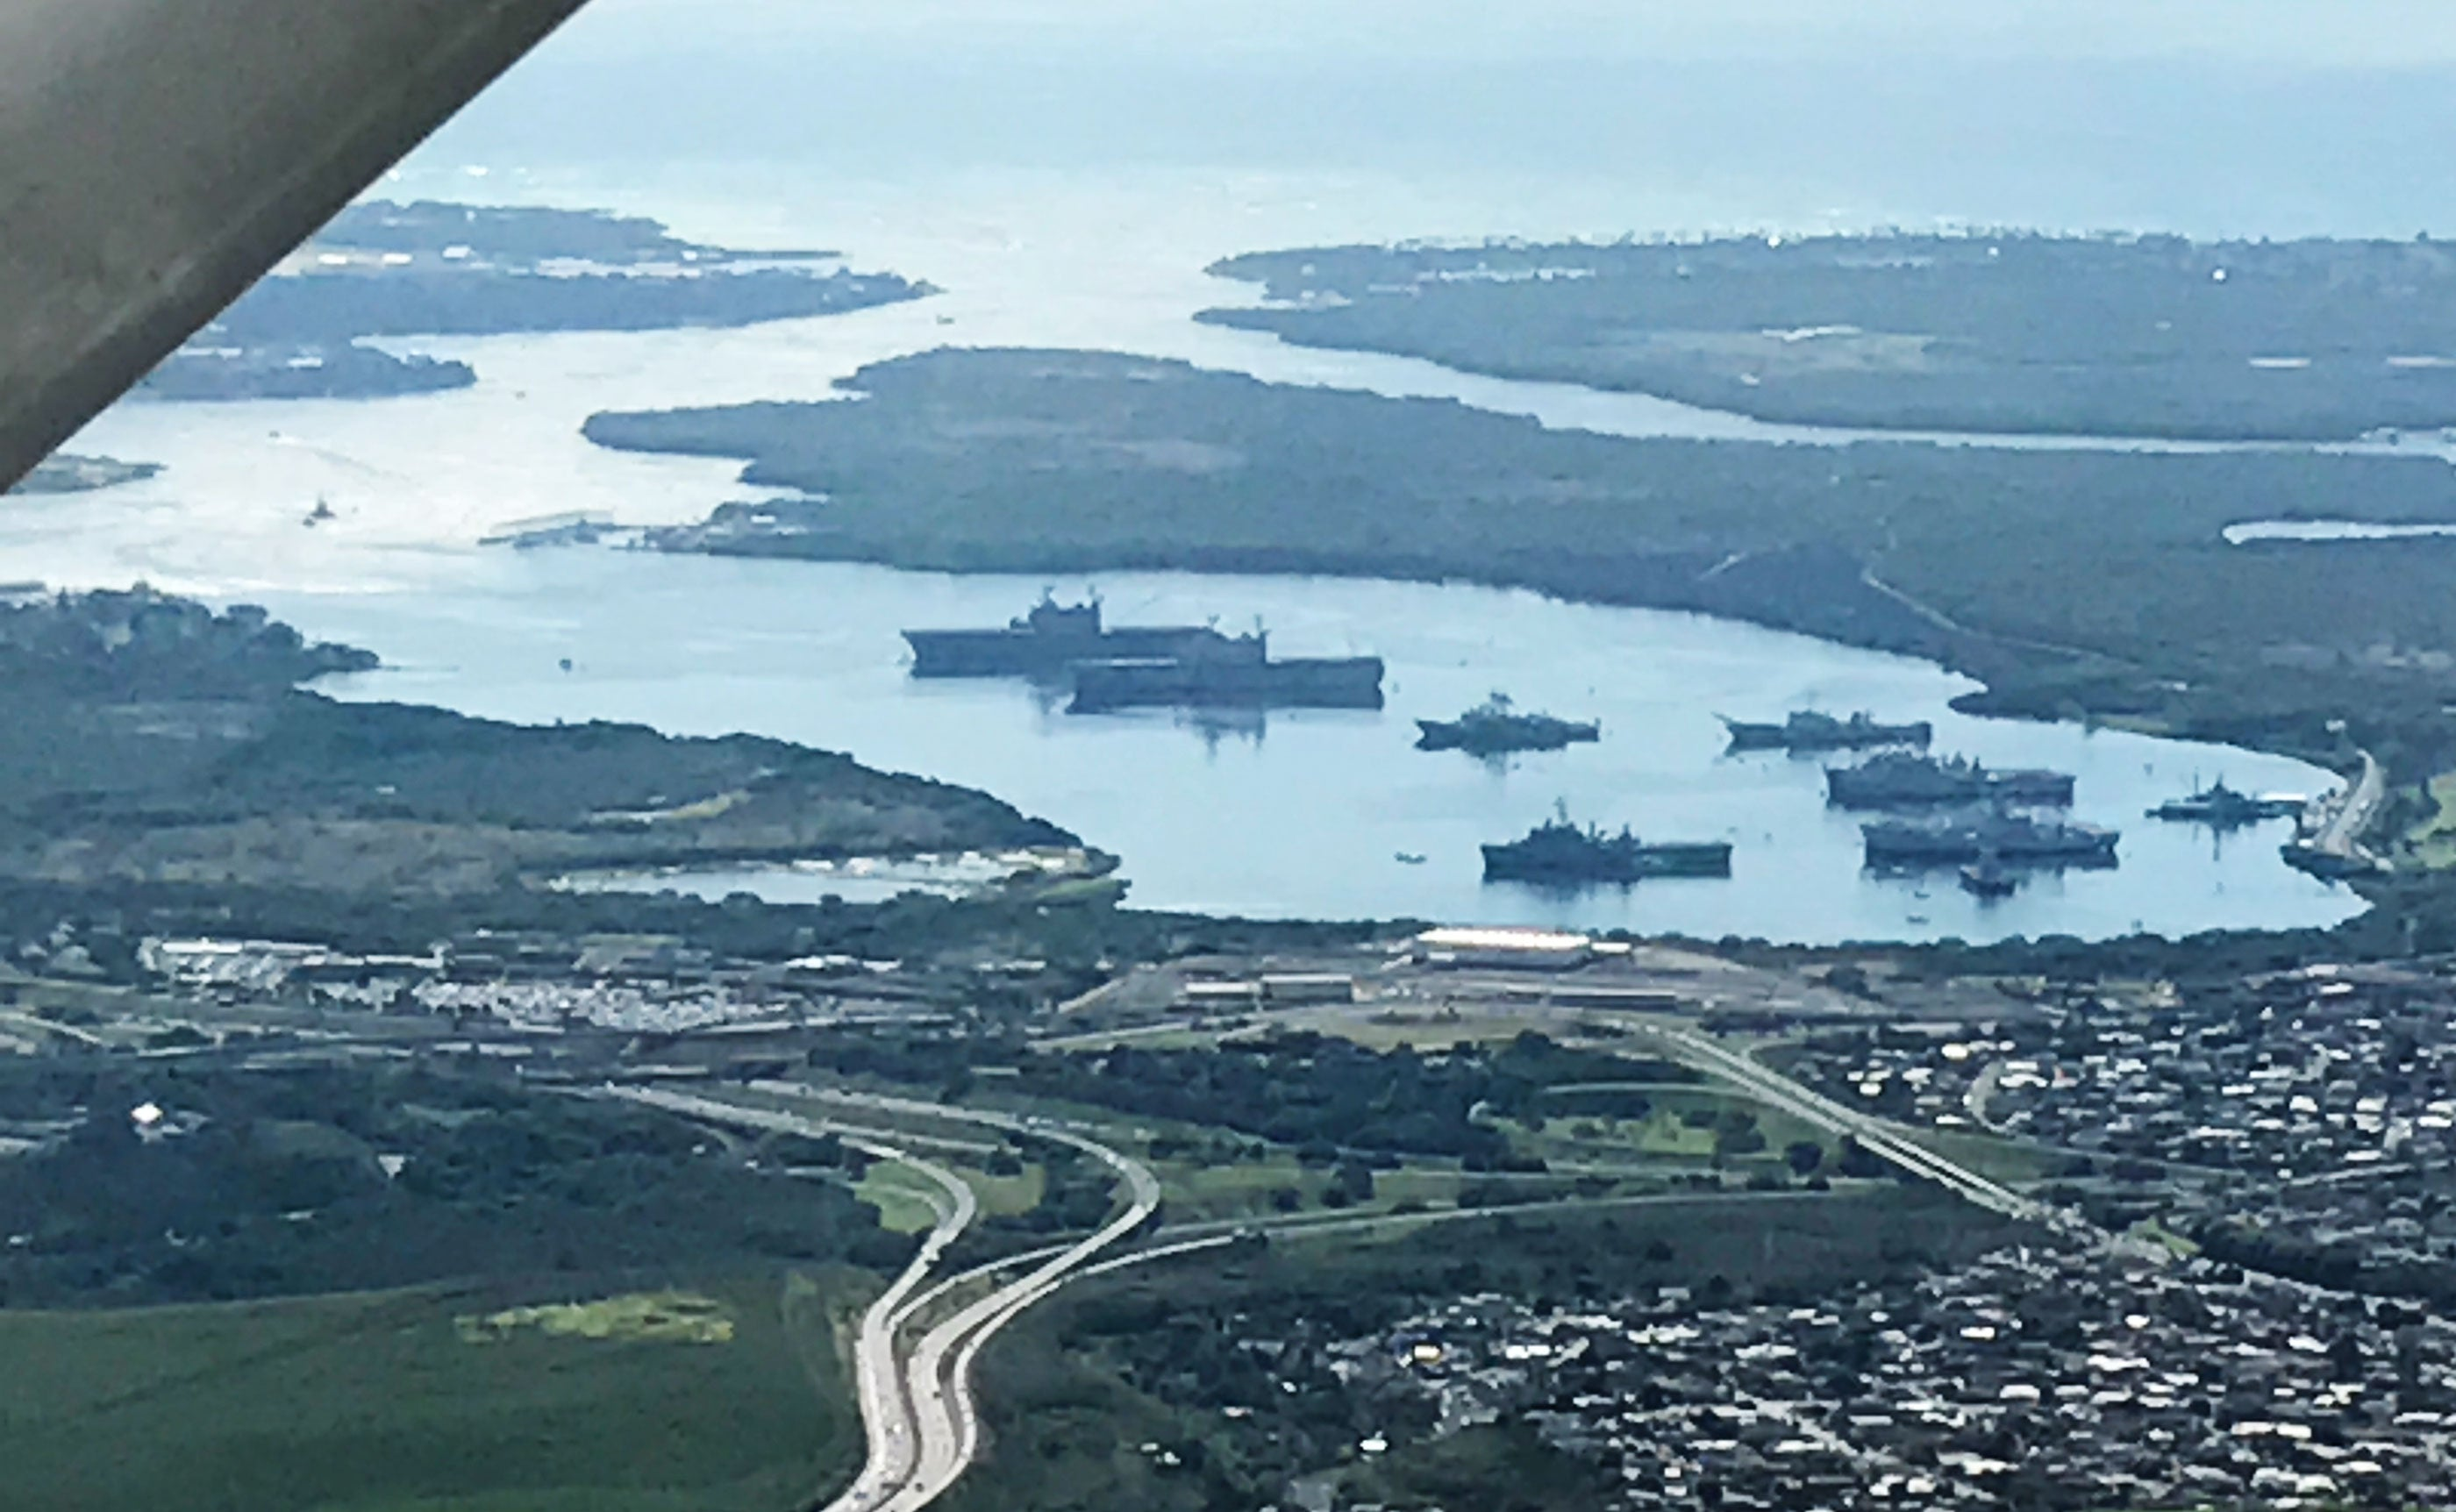 Flying over Pearl Harbor